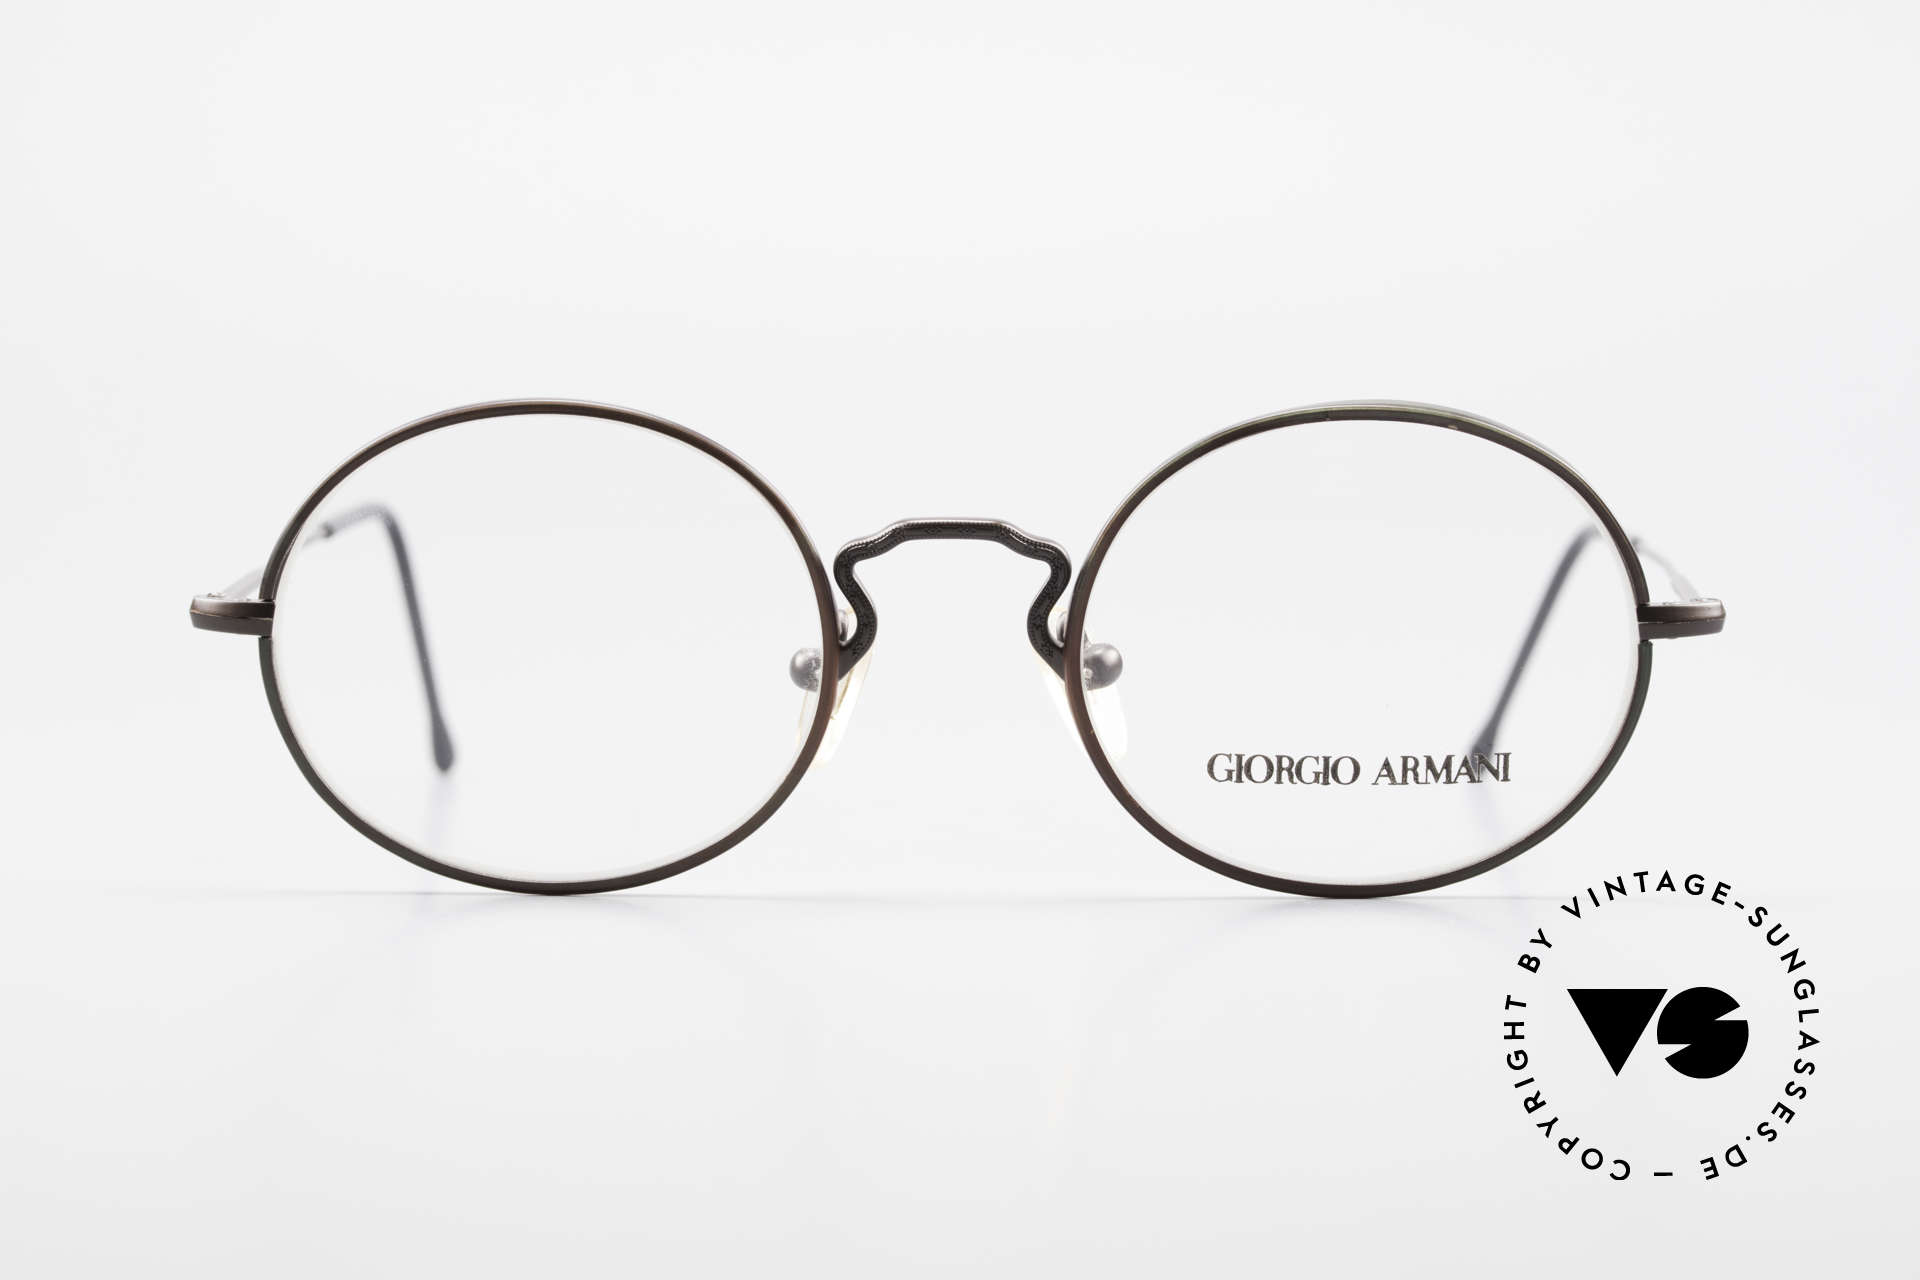 Giorgio Armani 247 Finish Shines Brown And Green, oval frame design; M size 49/20 - a timeless classic!, Made for Men